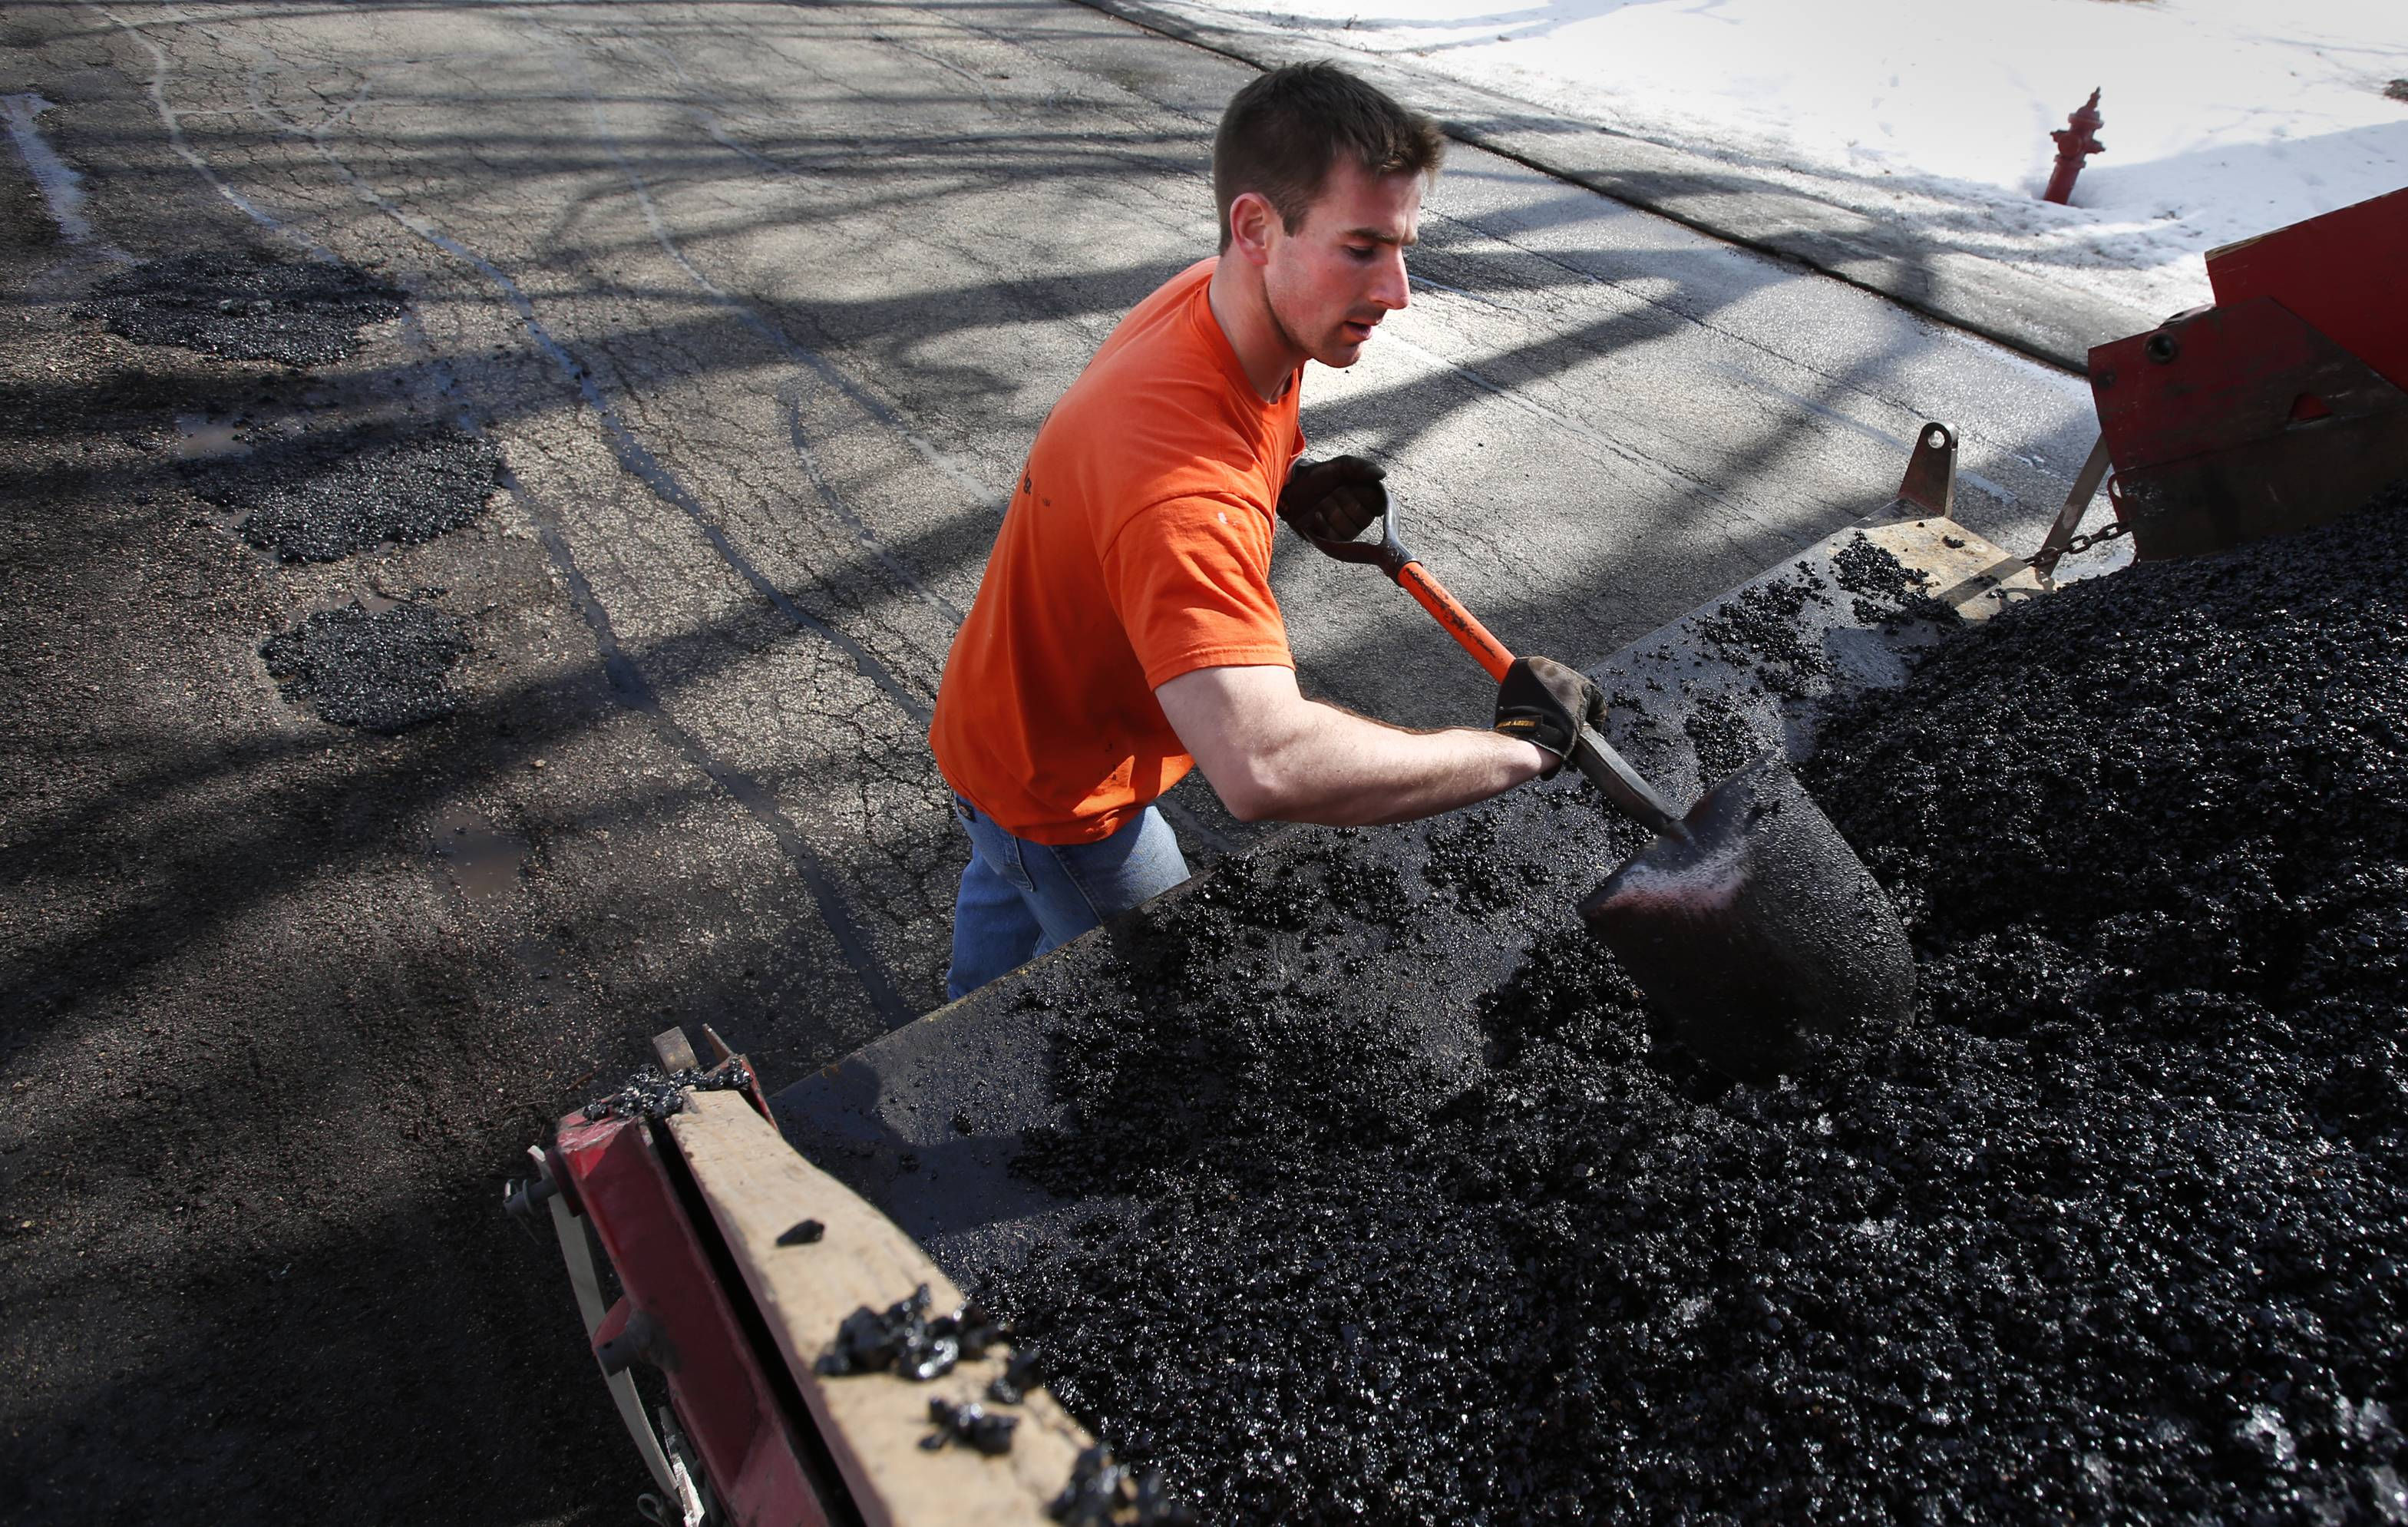 Sleepy Hollow public works employee Kyle Killinger fills in potholes along Willow Drive Monday, while wearing a short-sleeved shirt. Even though pothole season continues, at least those that work outside got a huge break Monday with springlike temperatures.